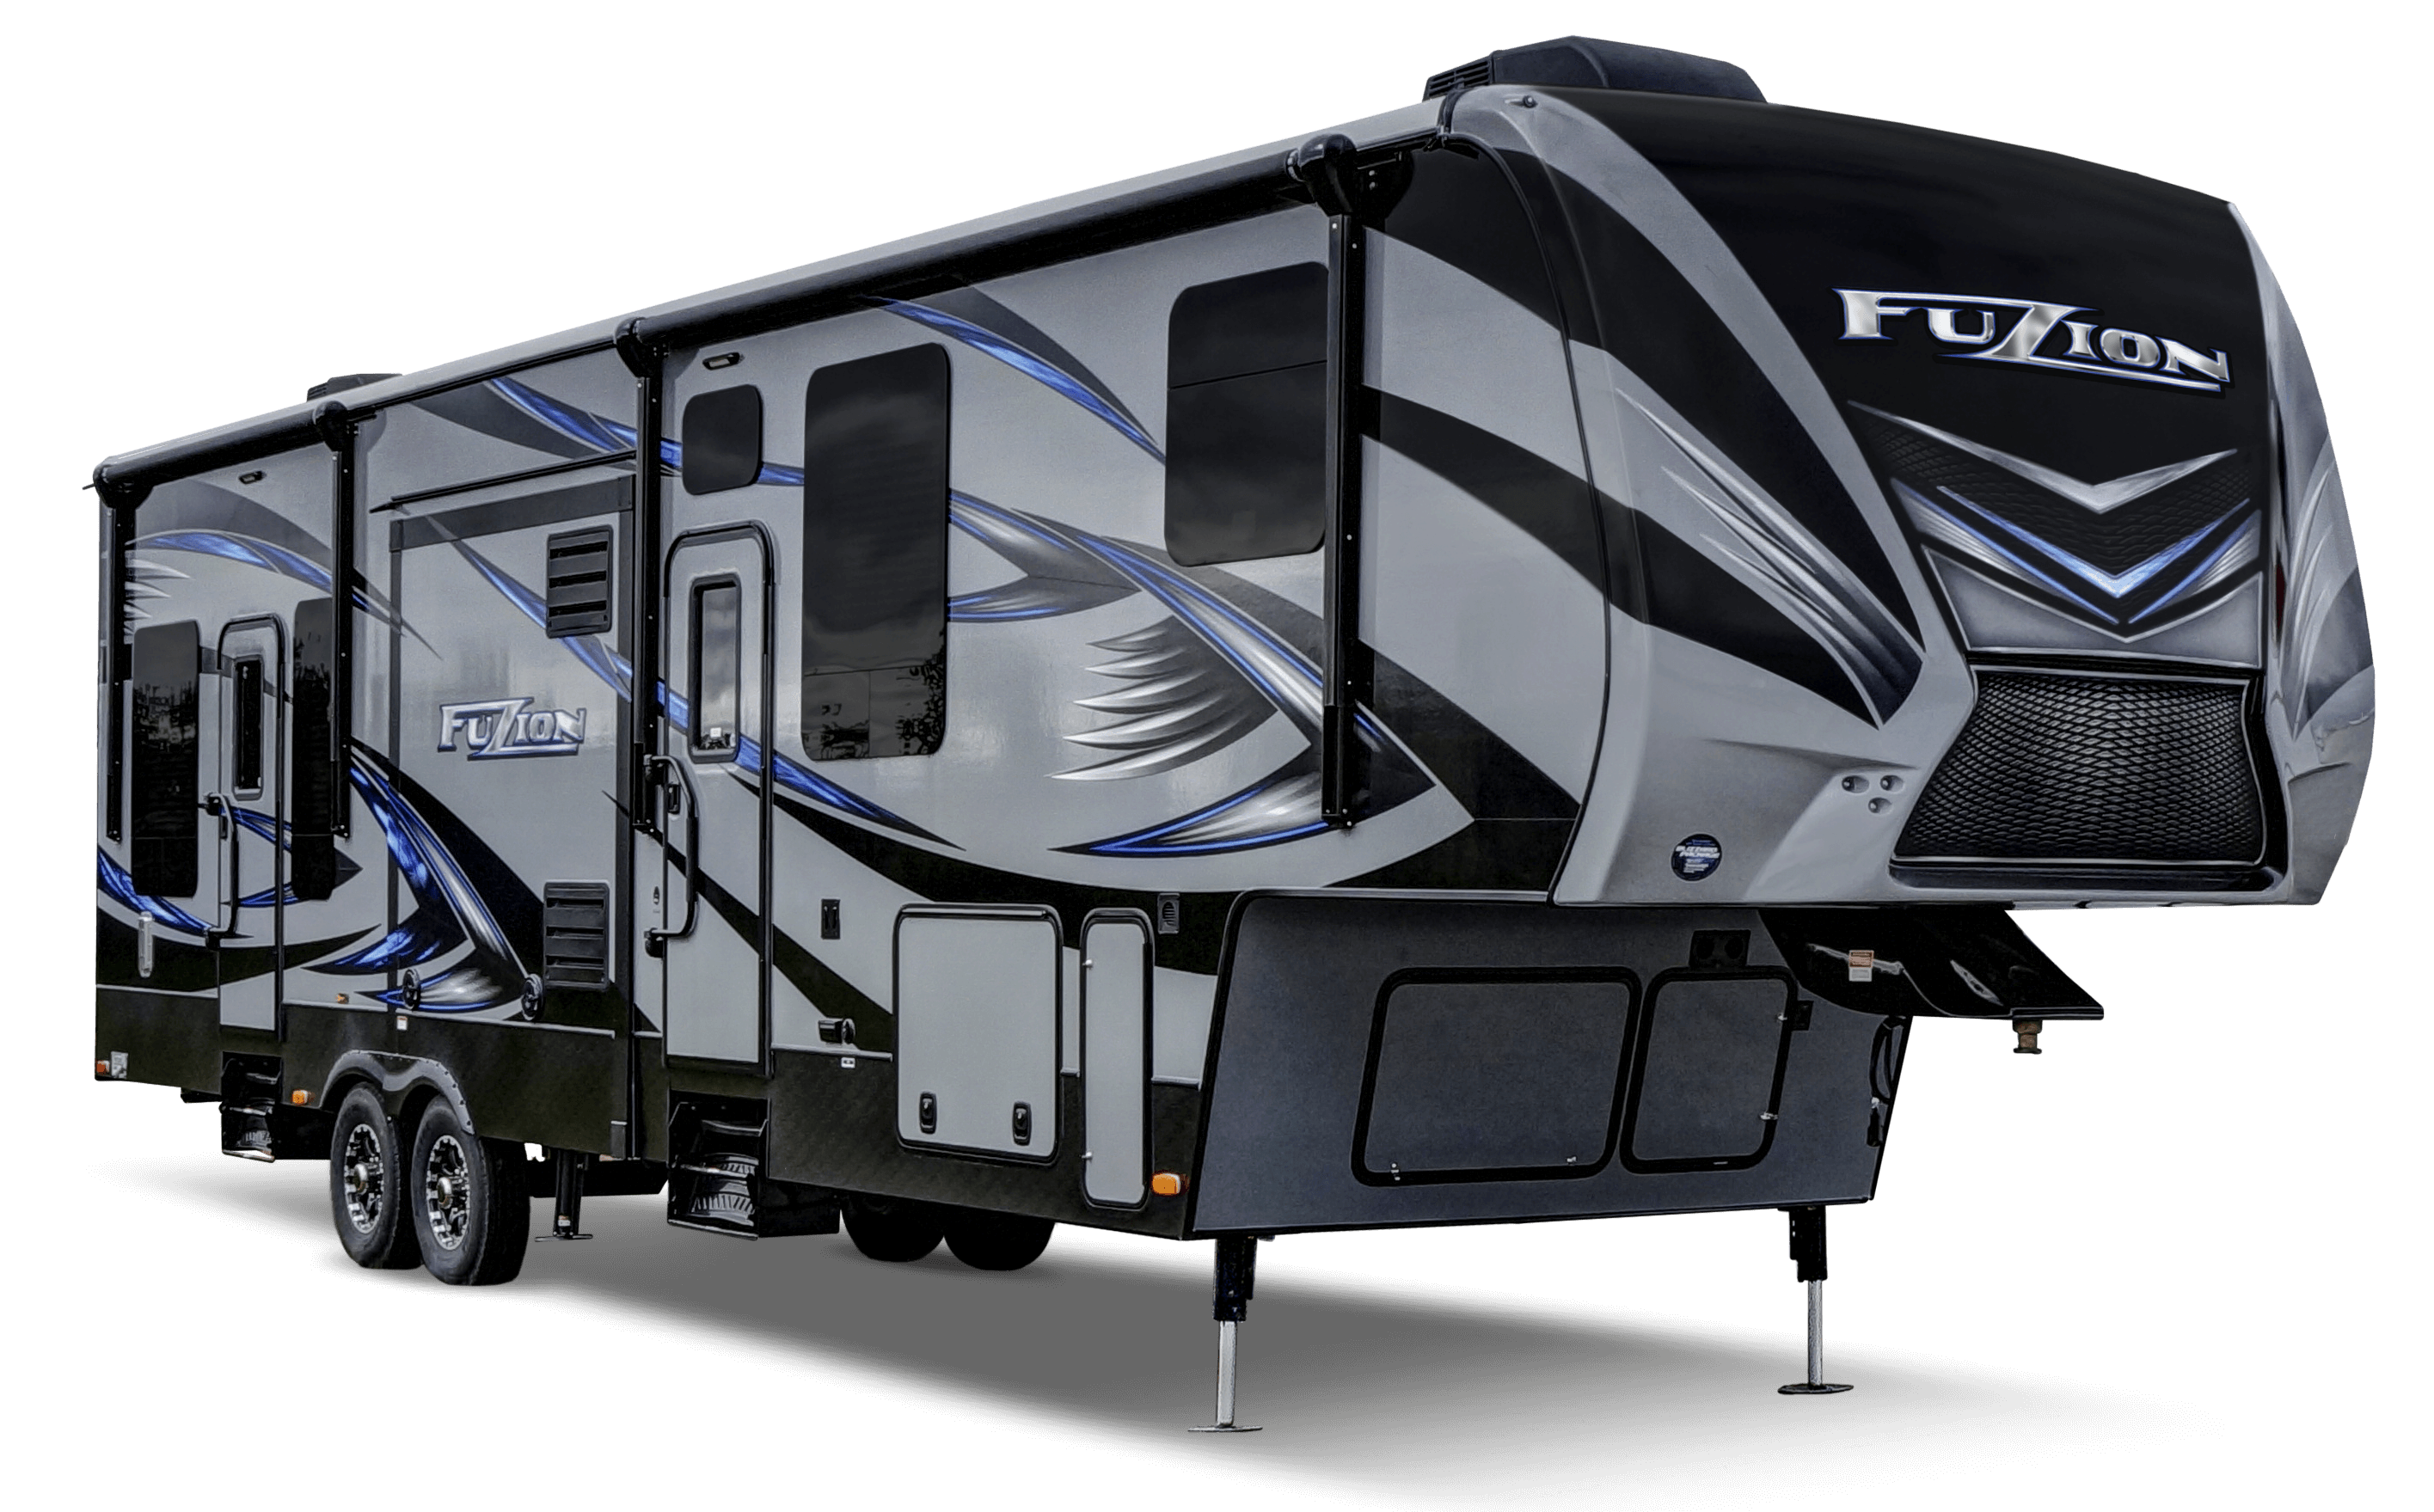 Keystone toy hauler fifth wheel for Motor home toy hauler